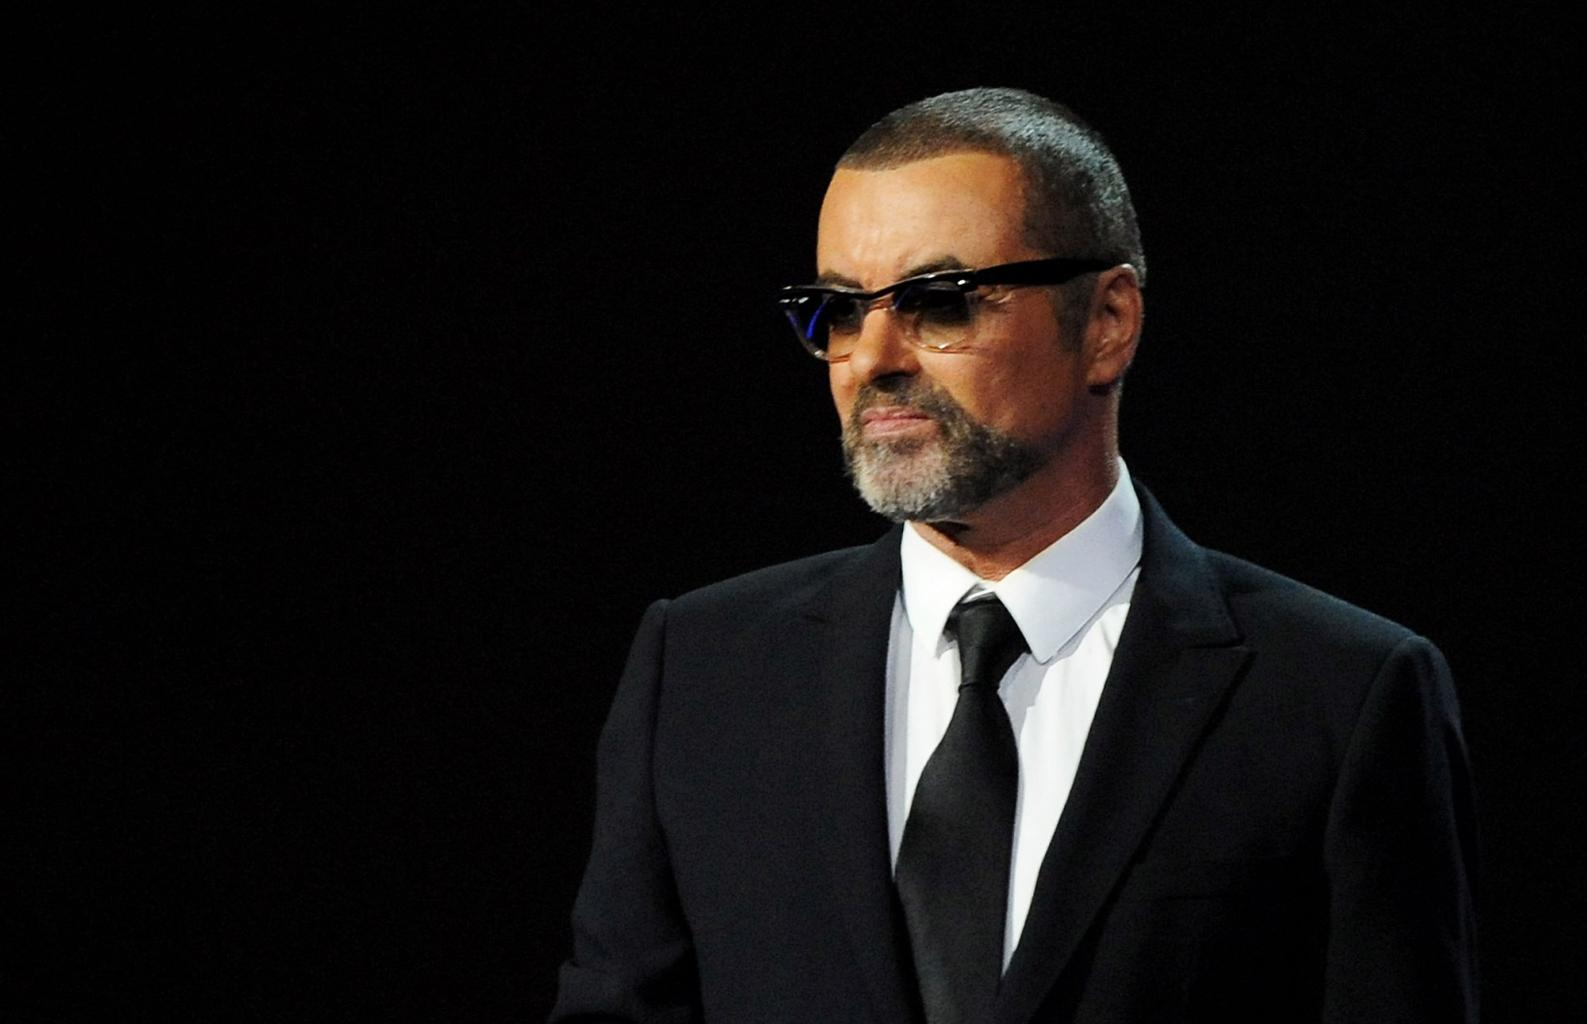 'Hard Drugs Had Been Back in His Life': George Michael's Cousin Claims His Death Was Linked to a Drug Overdose